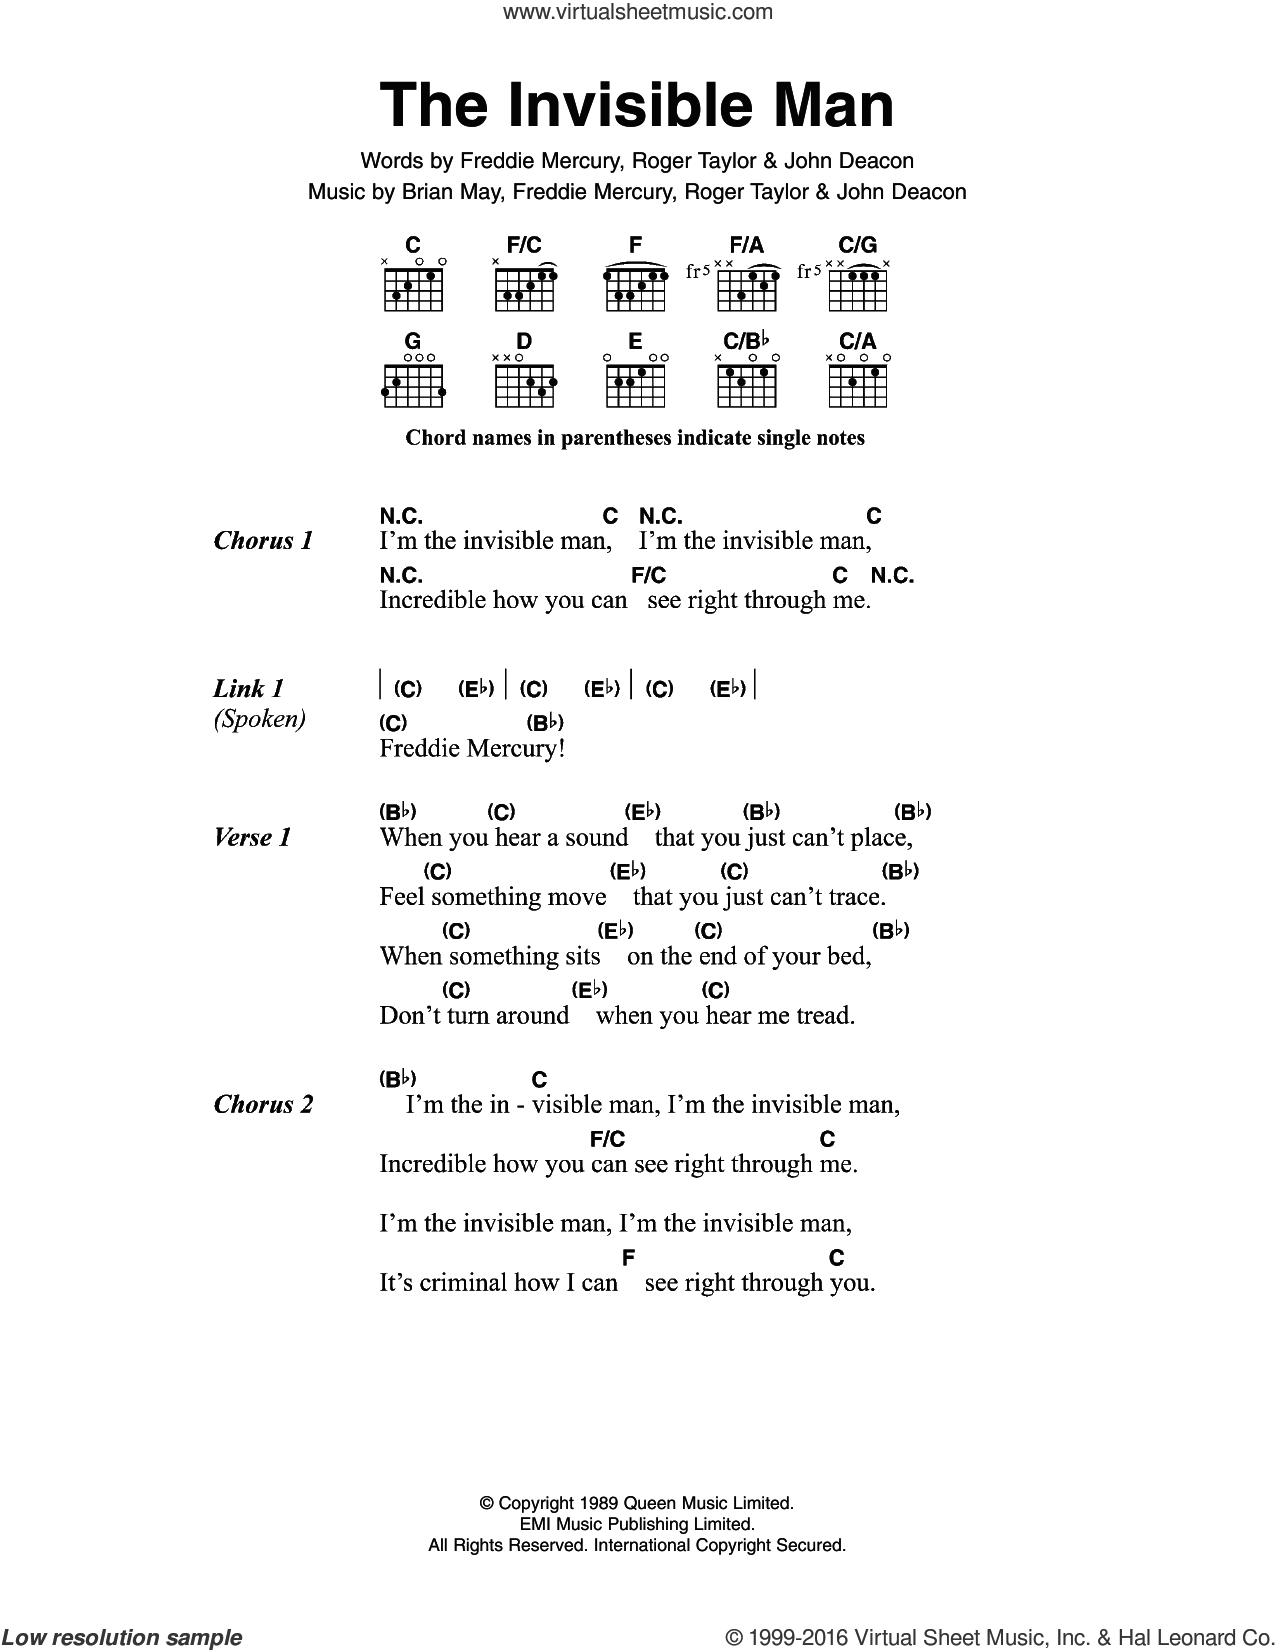 The Invisible Man sheet music for guitar (chords) by Roger Taylor, Queen, Brian May, Freddie Mercury and John Deacon. Score Image Preview.